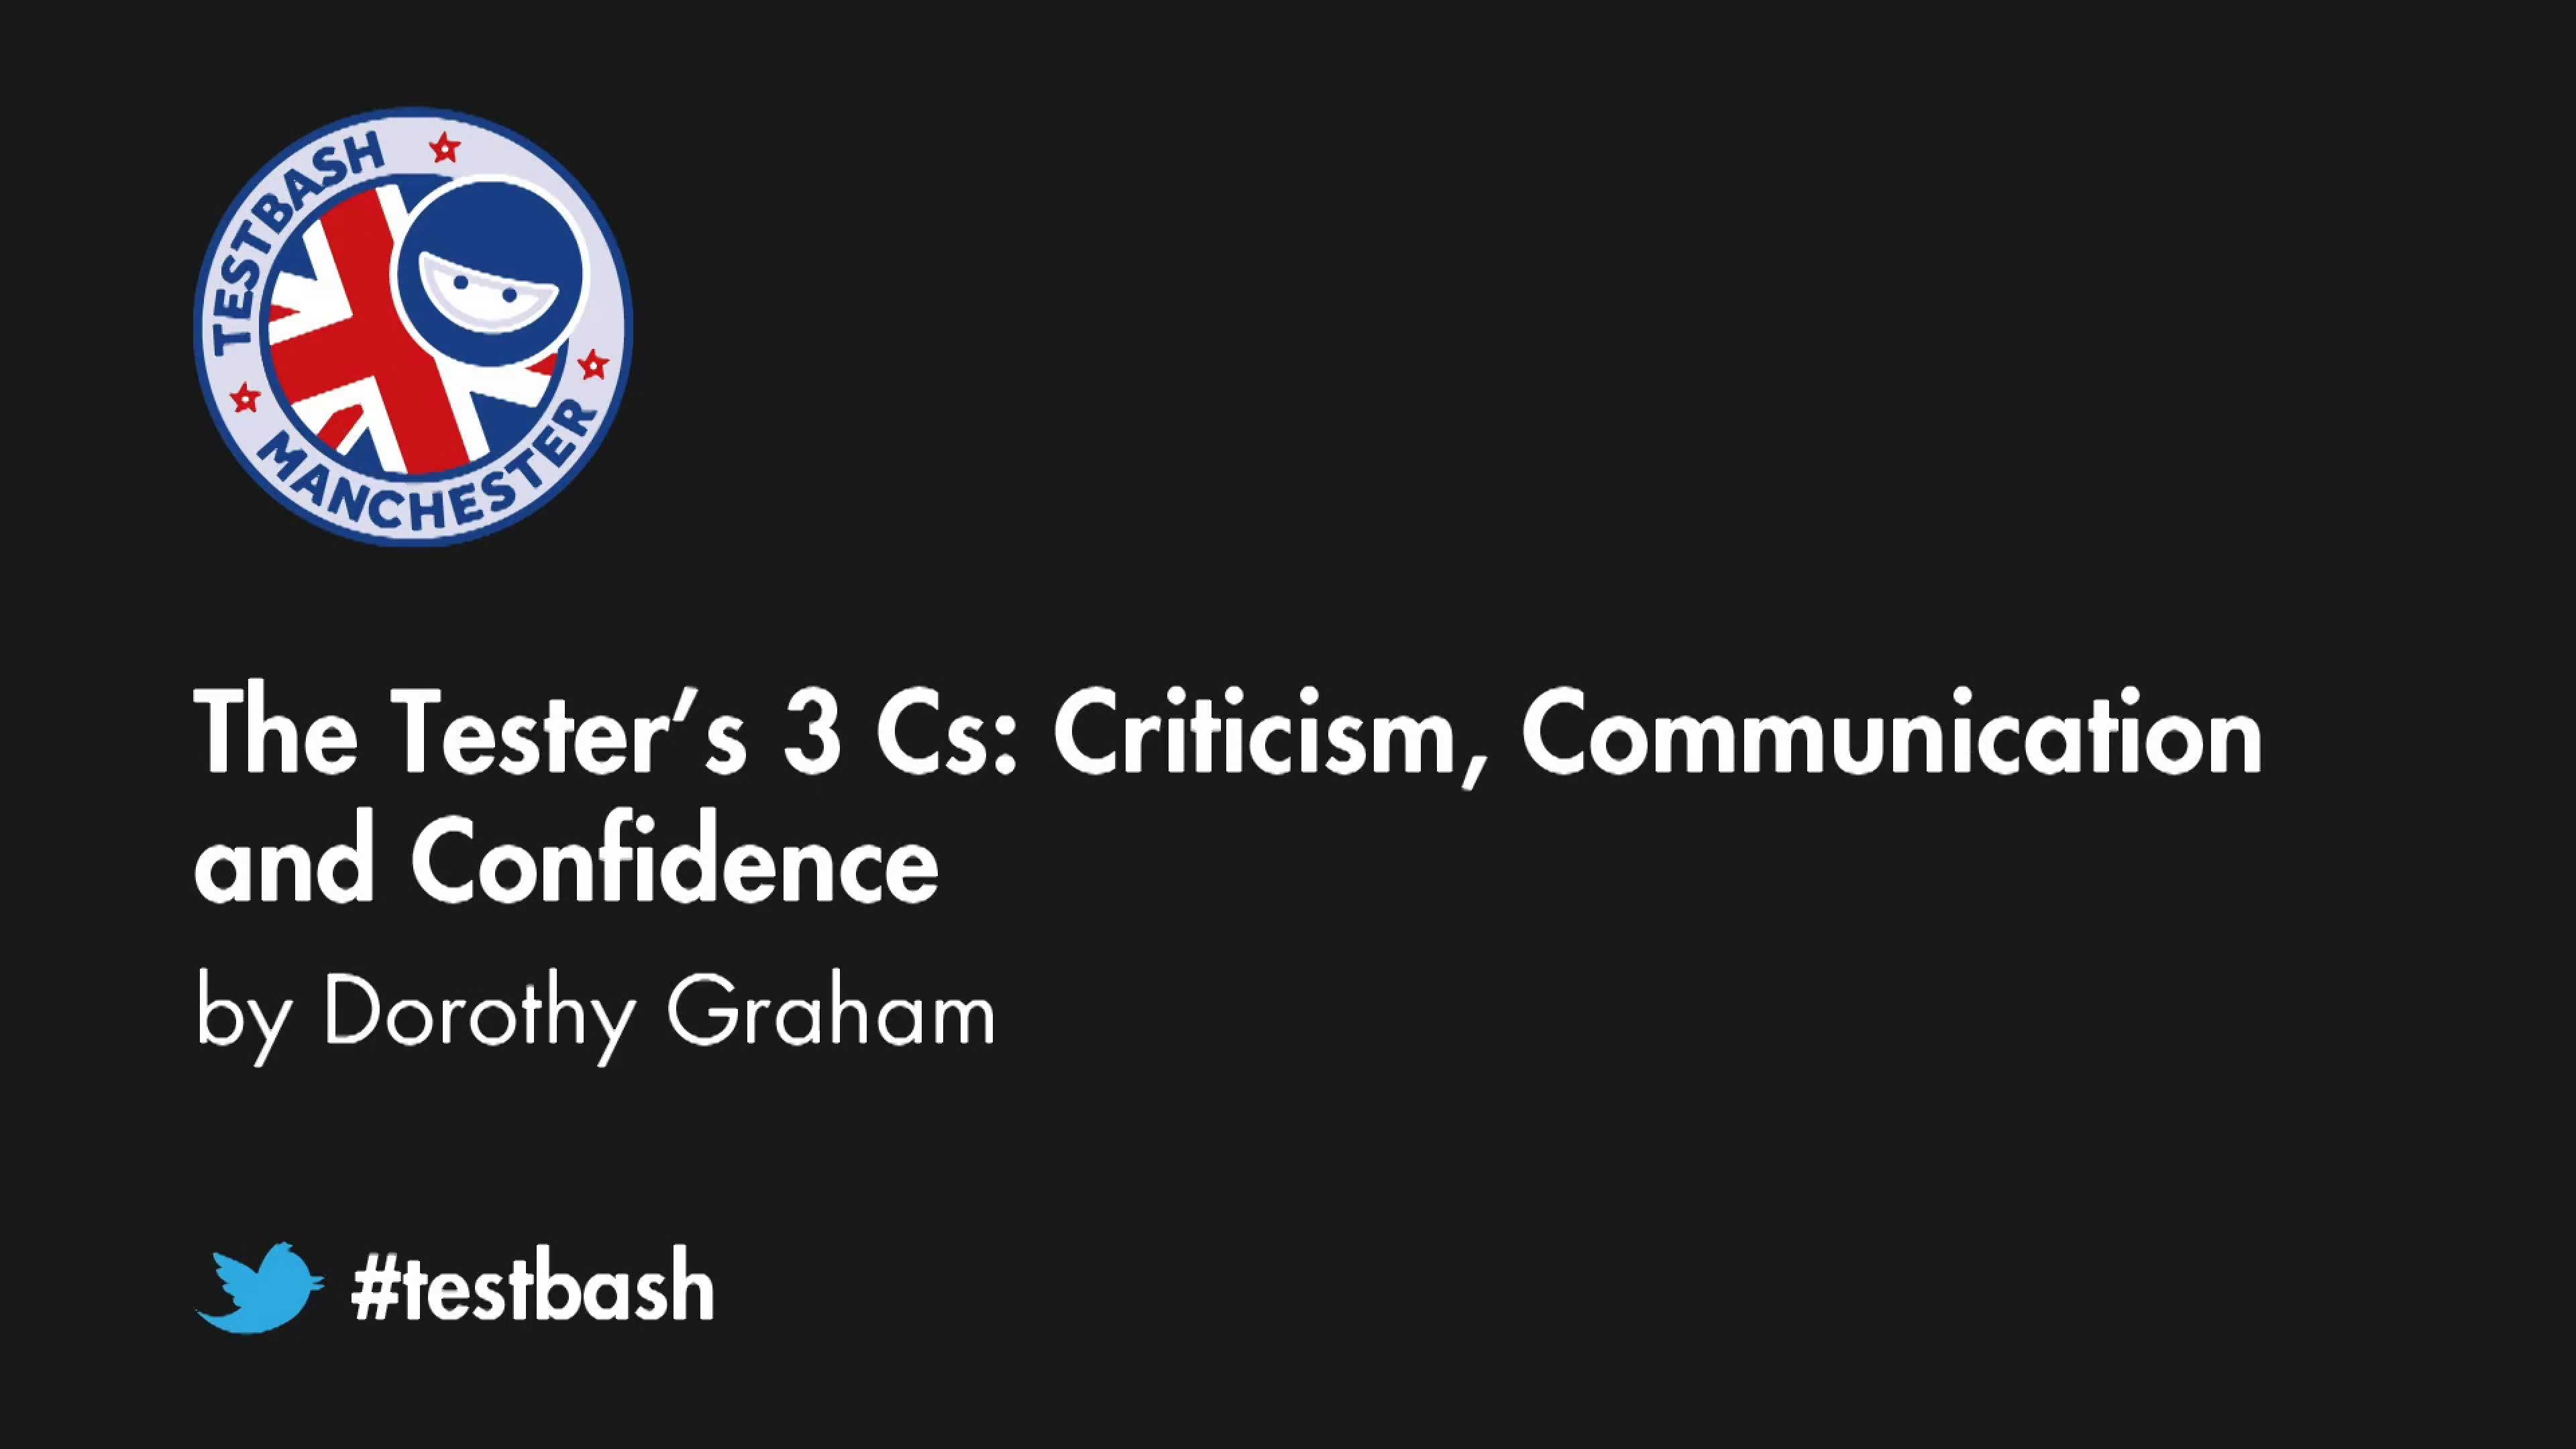 The tester's 3 Cs: Criticism, Communication and Confidence - Dorothy Graham